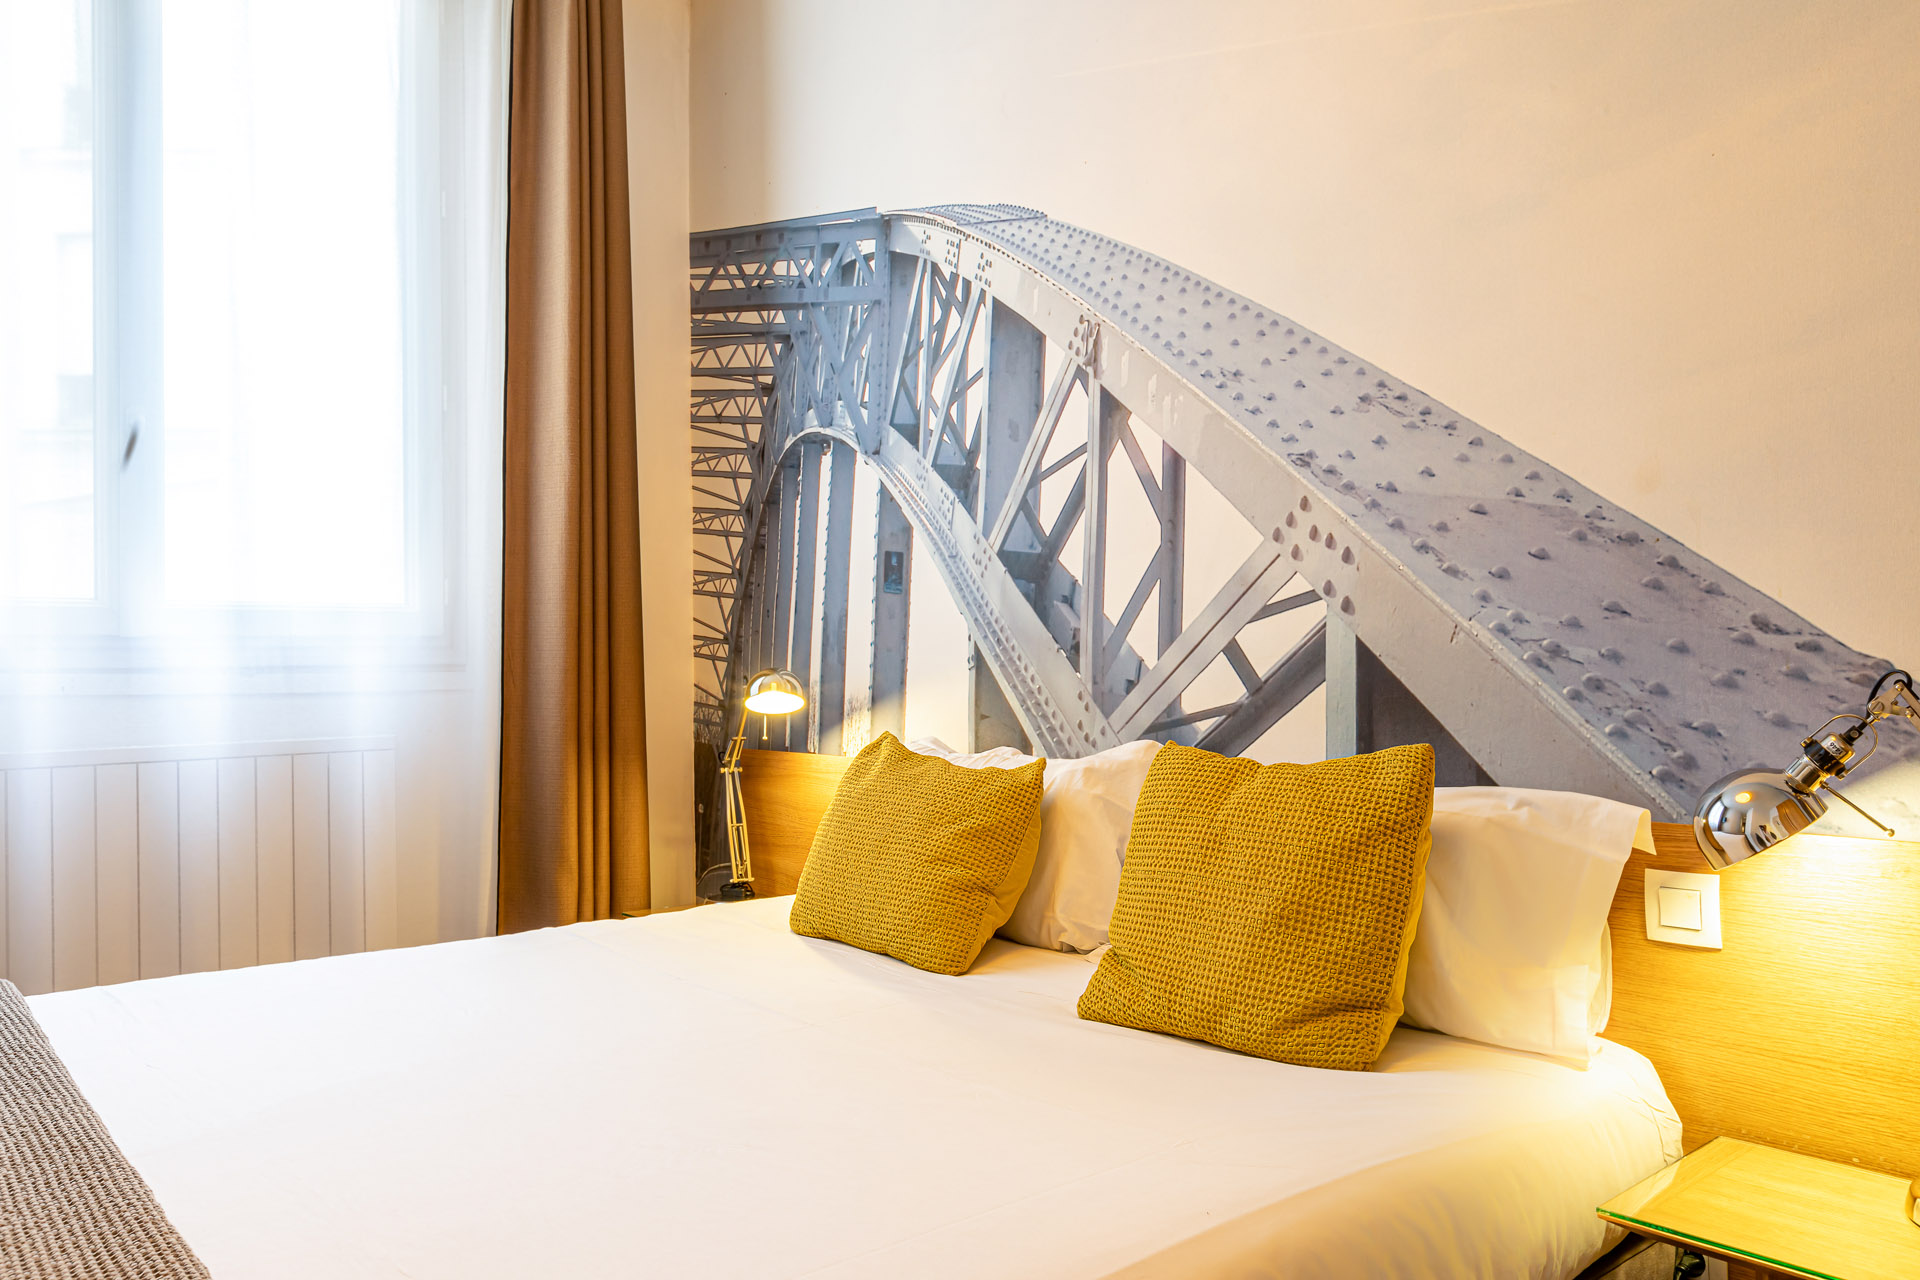 hotels in paris 11th arrondissement